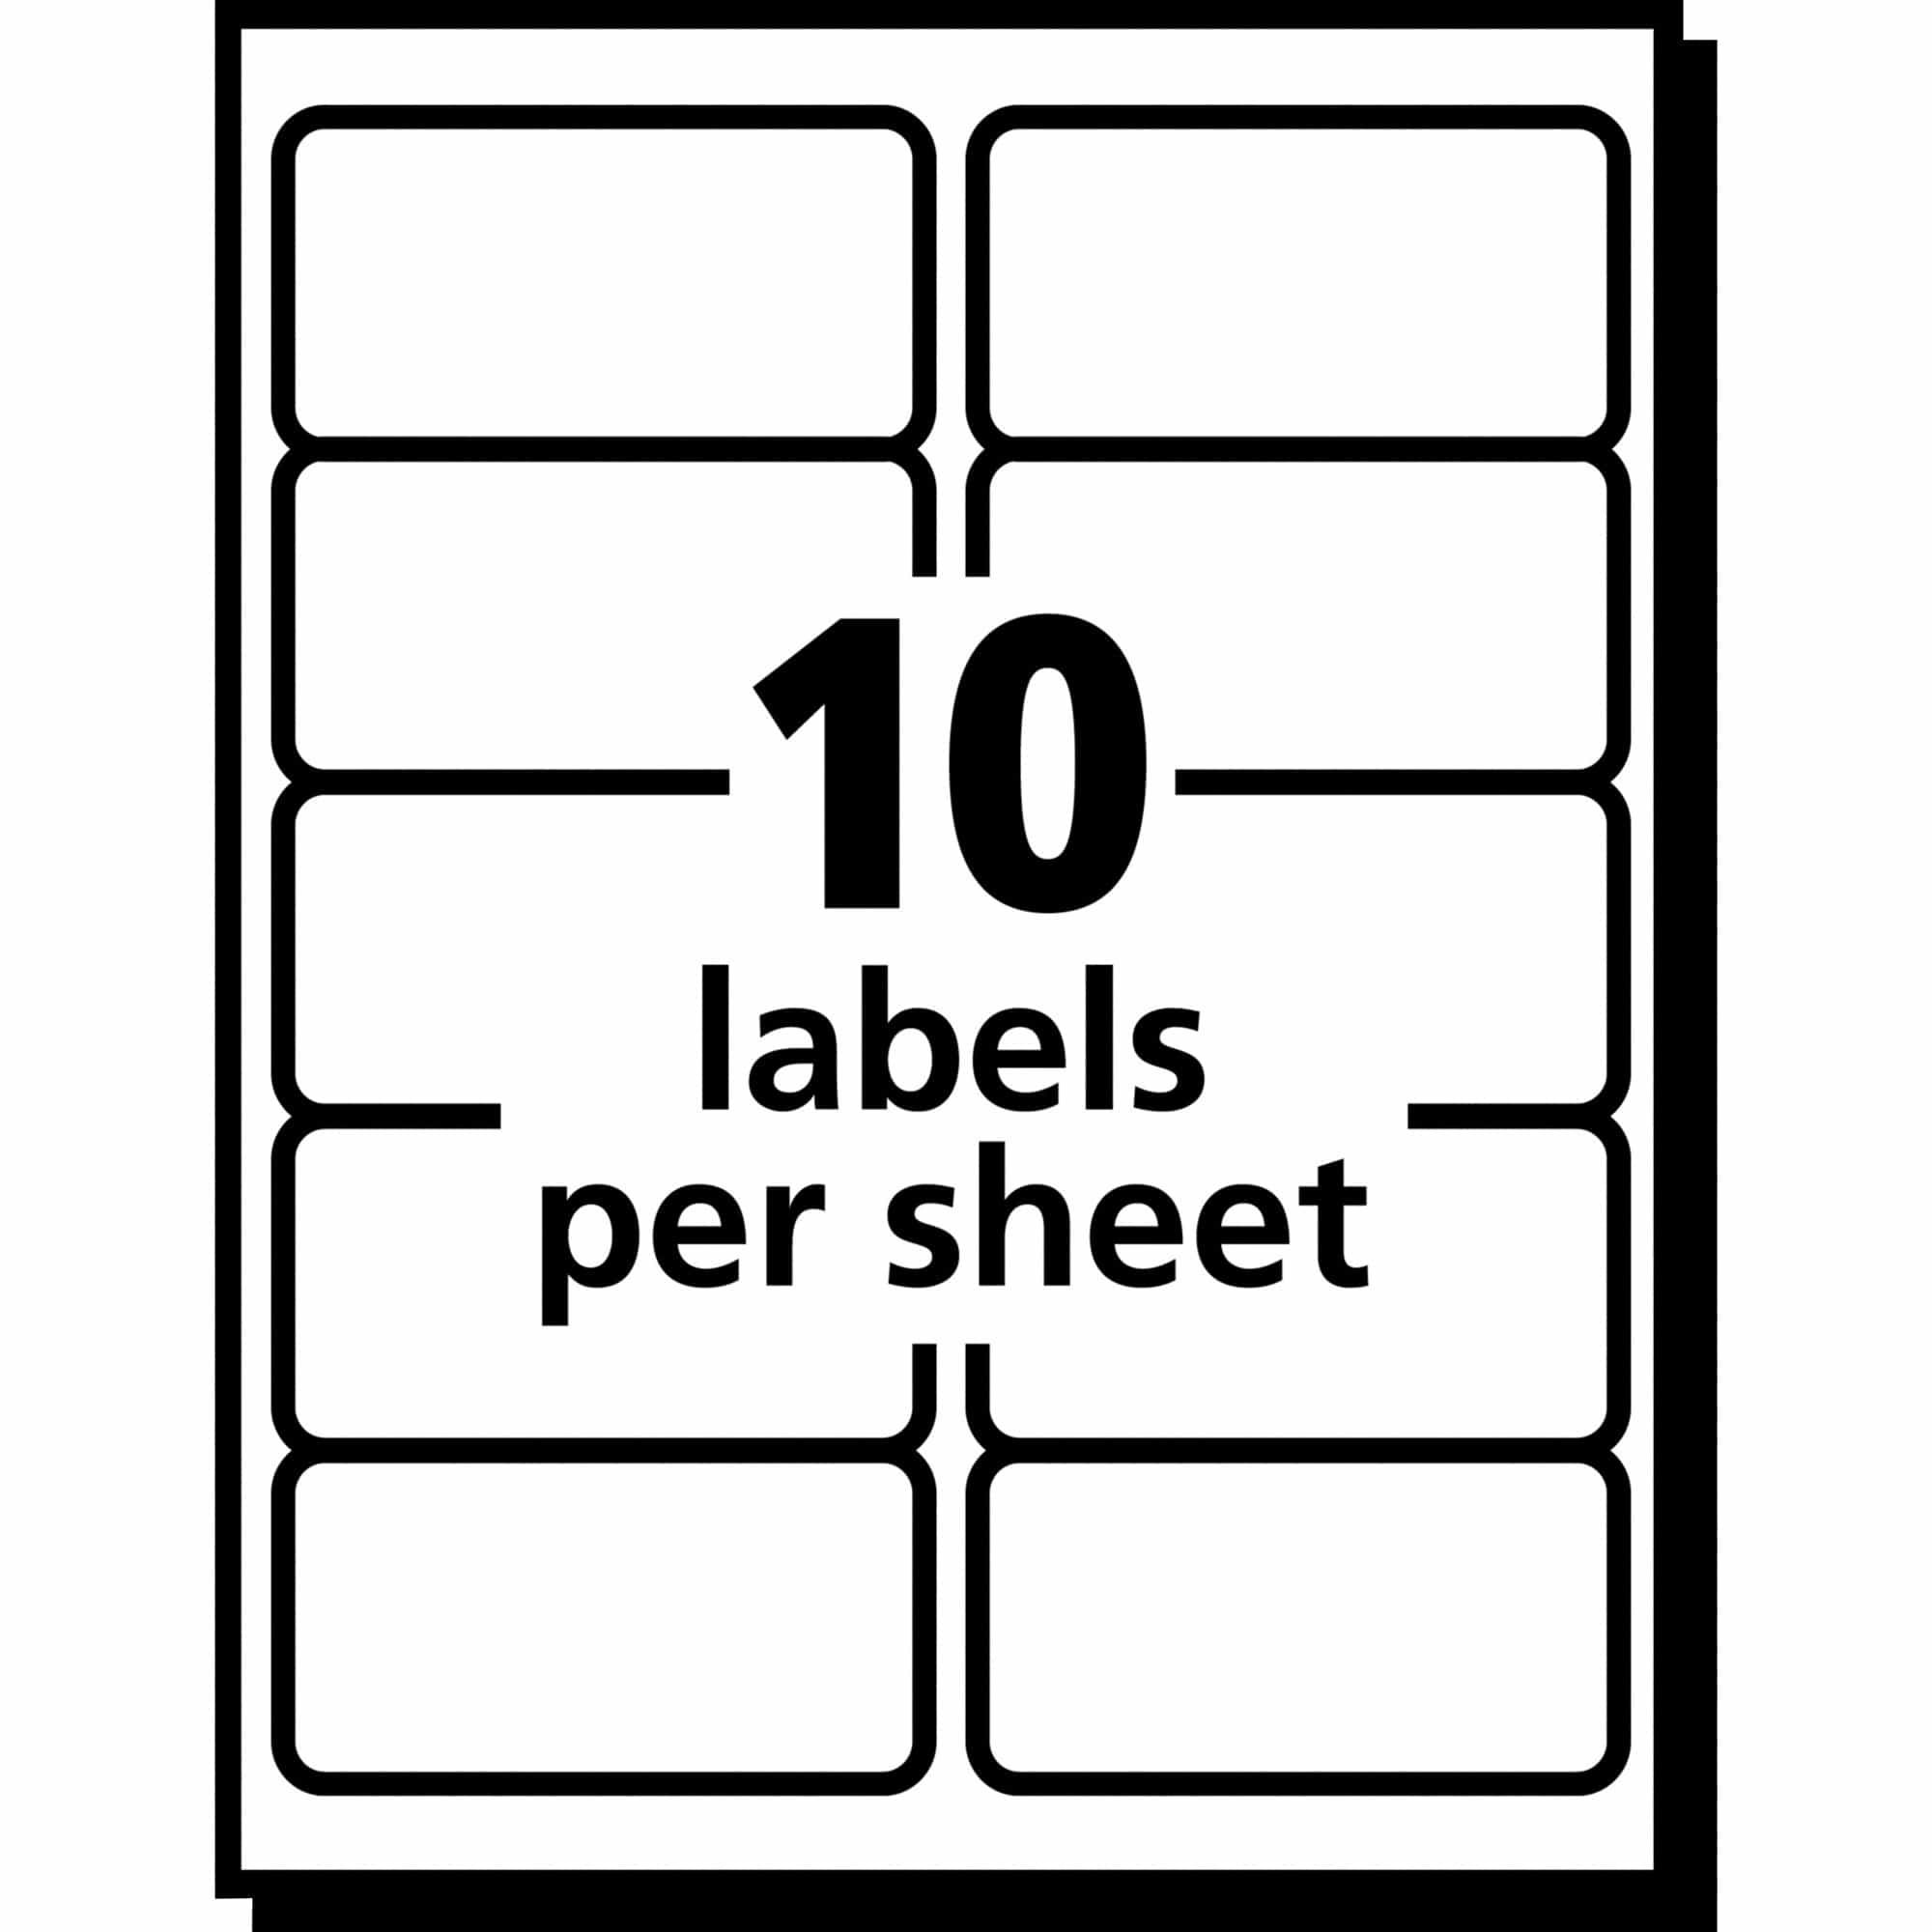 2 X 4 Label Template 10 Per Sheet Label Templates Inkjet Labels Create Labels